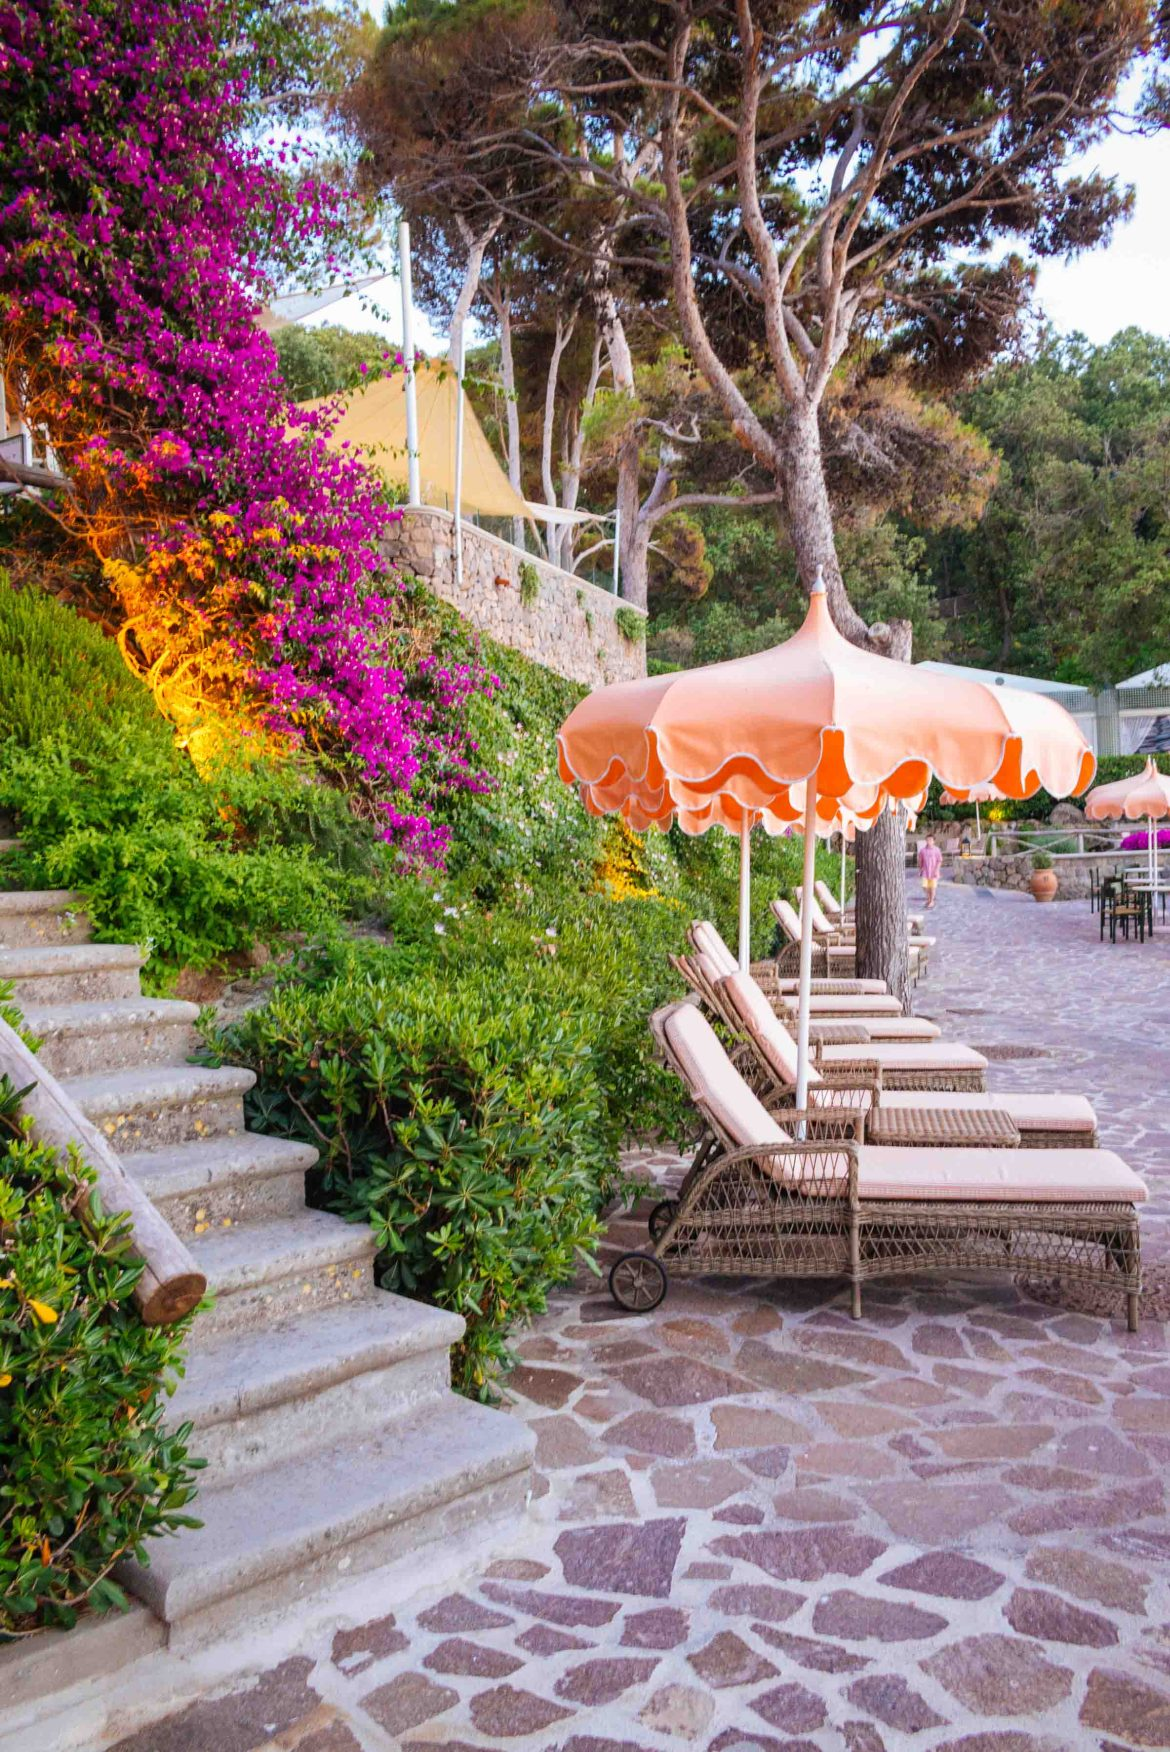 Find a tulip umbrella at the Mezzatorre Hotel in Ischia to sit under day or night. Photo by The Taste Edit, Sarah Stanfield